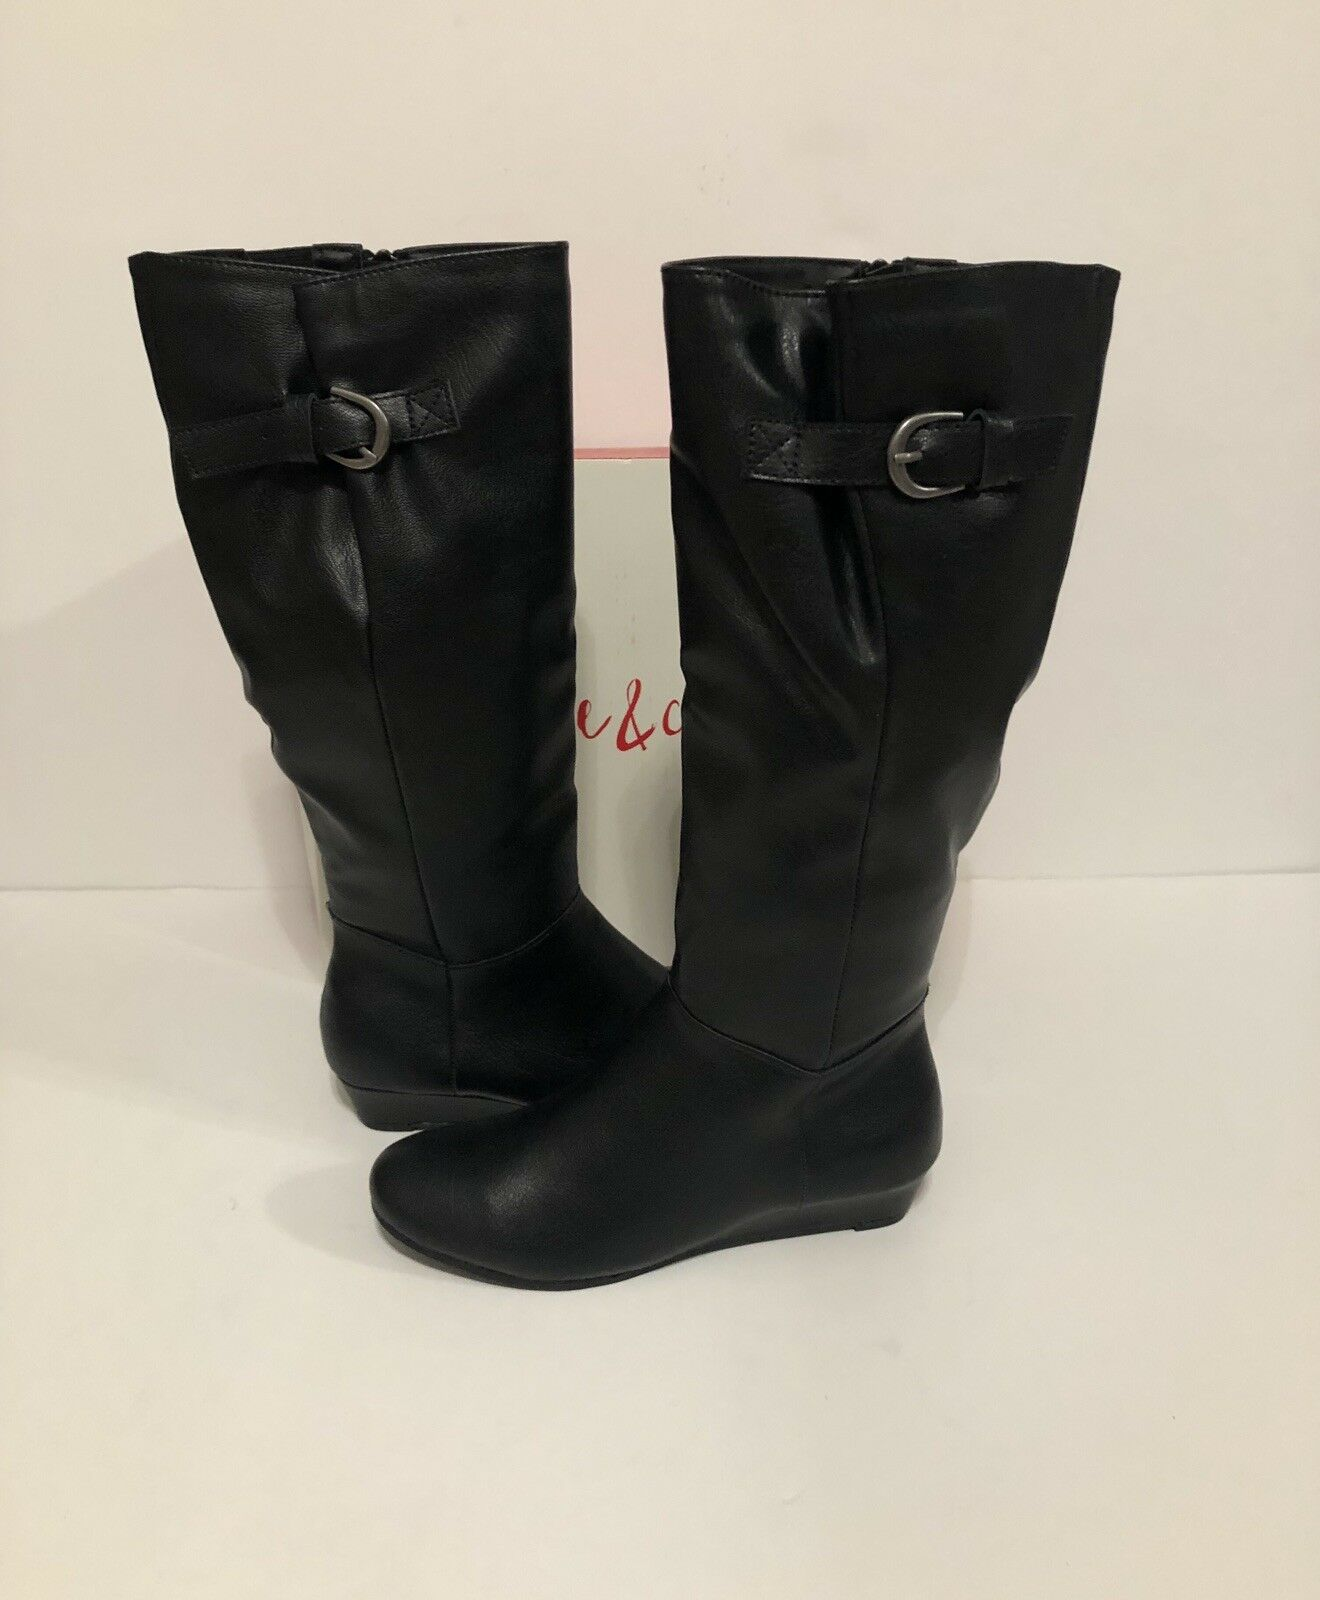 Style & Co Rainne Wedge Riding Boots Black Size 8M MSRP  69.50